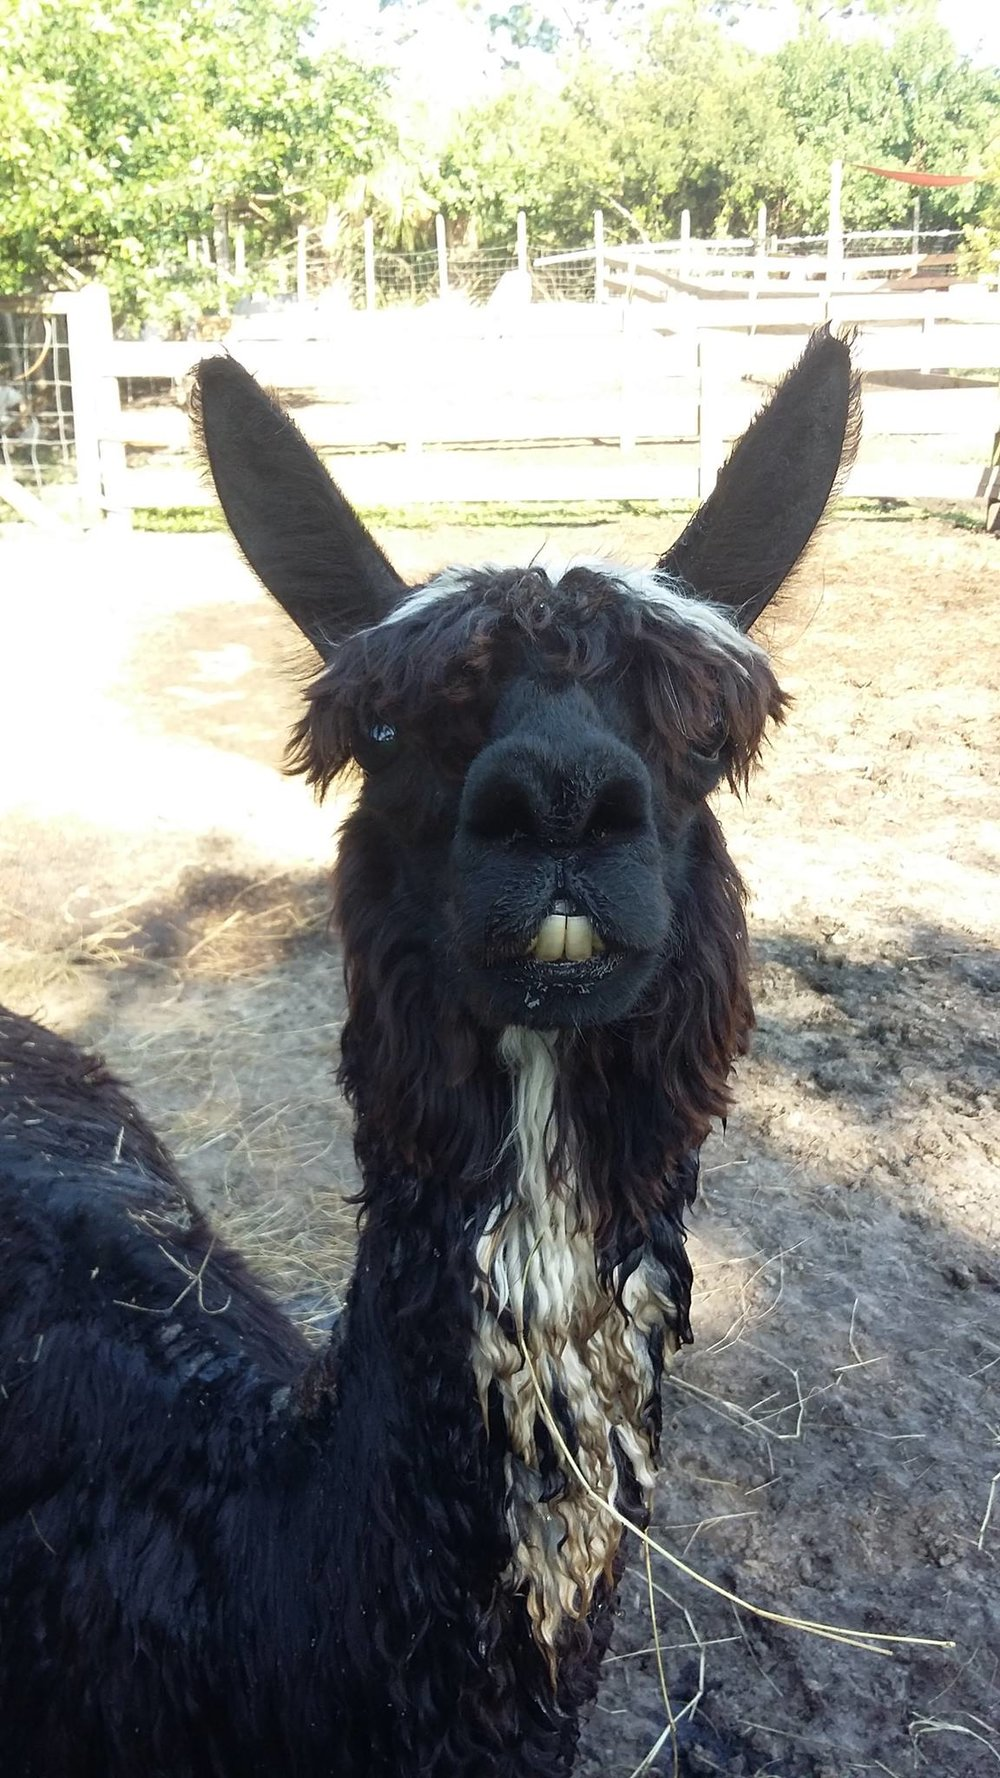 llama-saying-hello-obloy-family-petting-farm.jpg